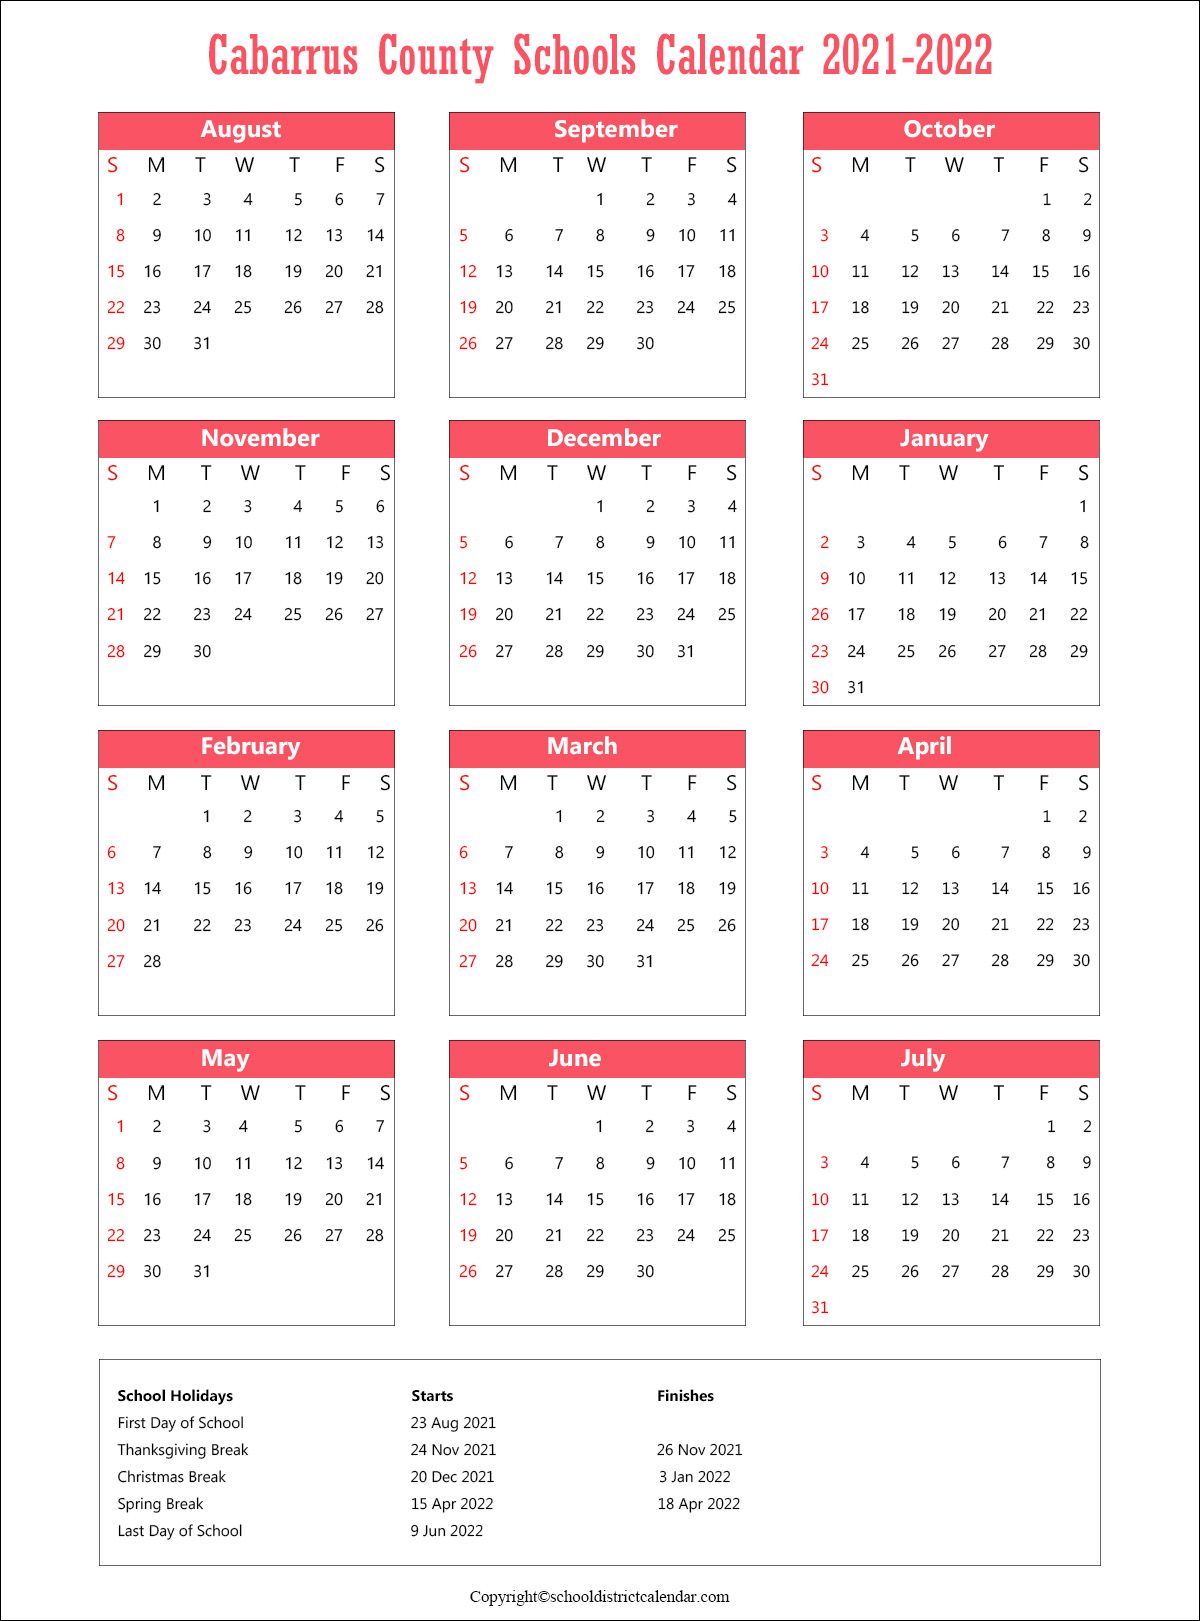 Cabarrus County Schools District, North Carolina Calendar Holidays 2021.1